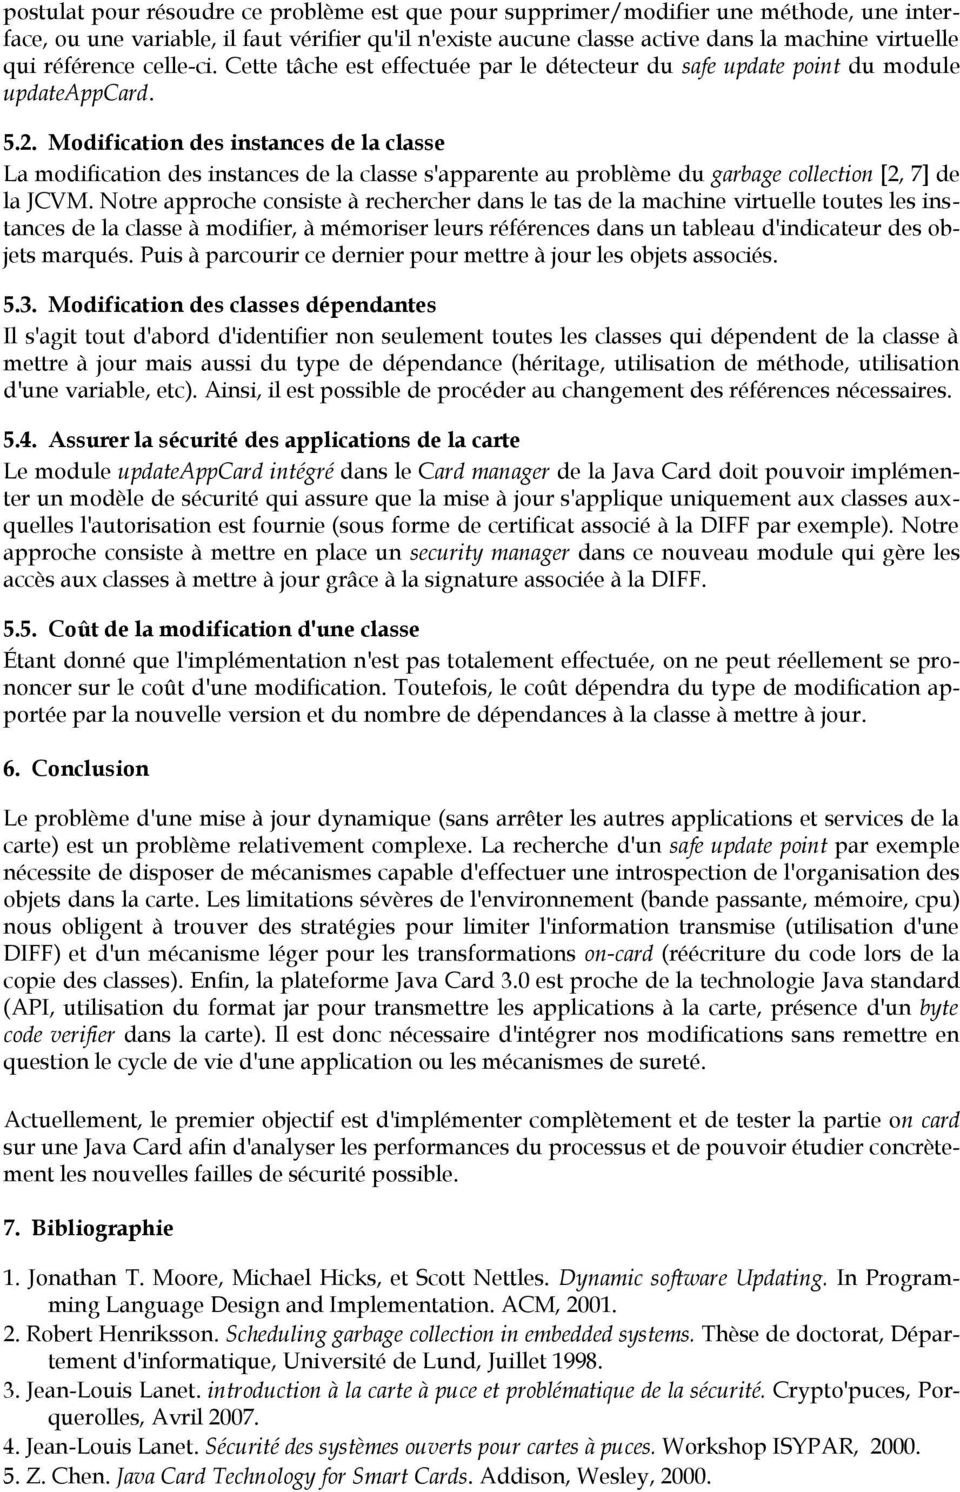 Modification des instances de la classe La modification des instances de la classe s'apparente au problème du garbage collection [2, 7] de la JCVM.